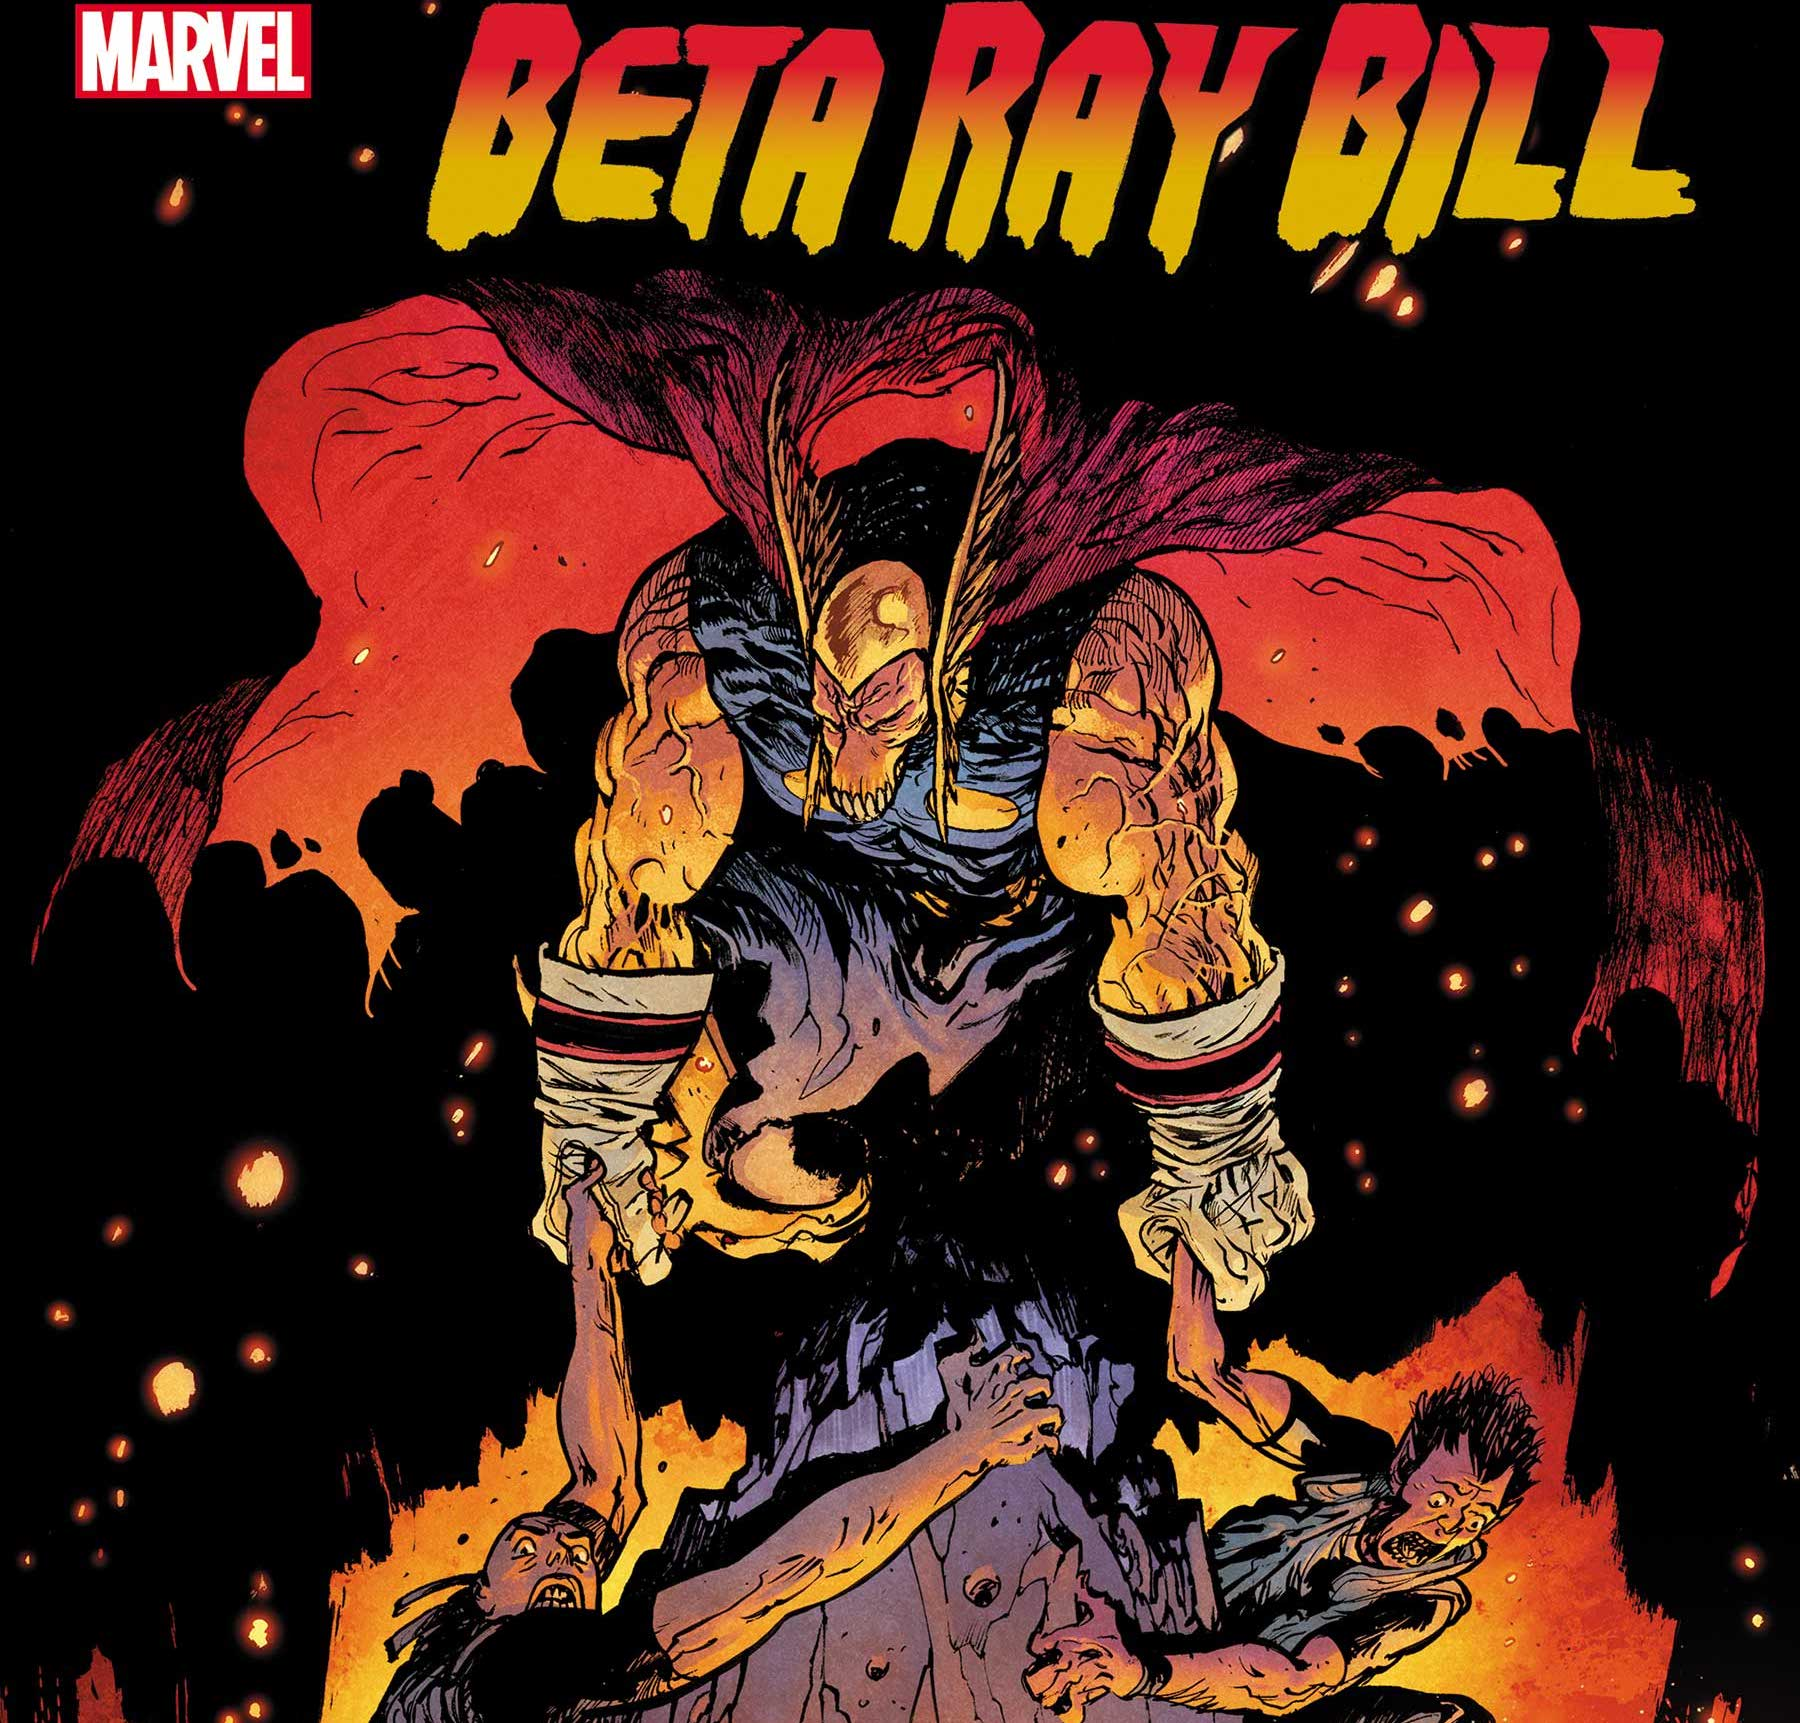 'Beta Ray Bill' #4 is an emotional sci-fi story